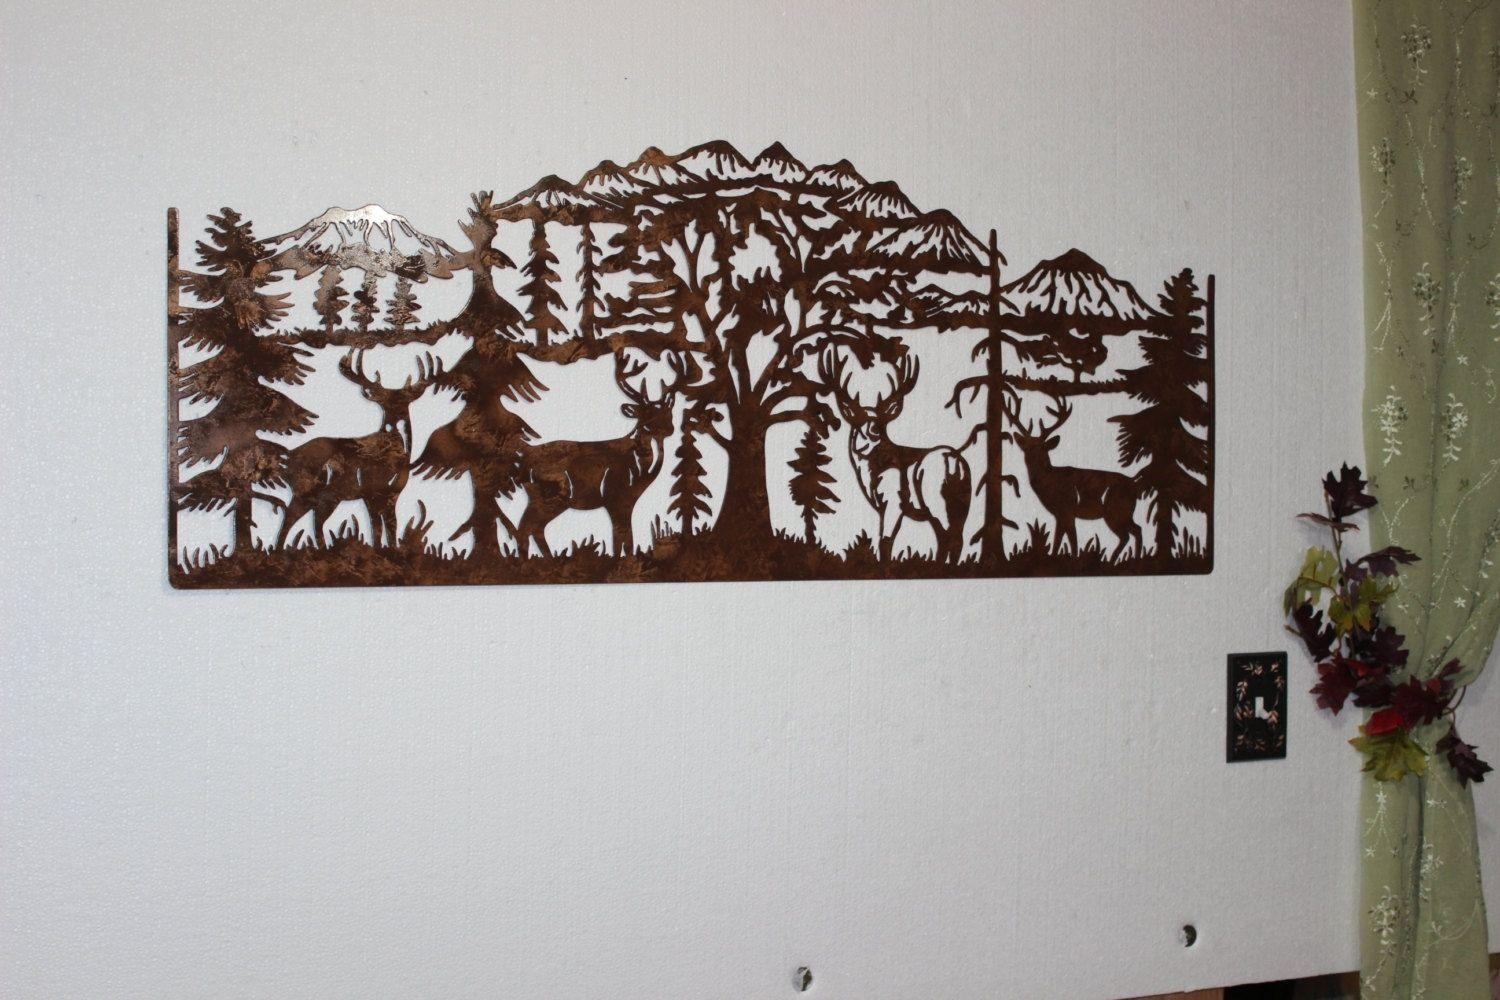 Hand Crafted Deer And Mountain Scene With 4 Majestic Bucks Large pertaining to Mountain Scene Metal Wall Art